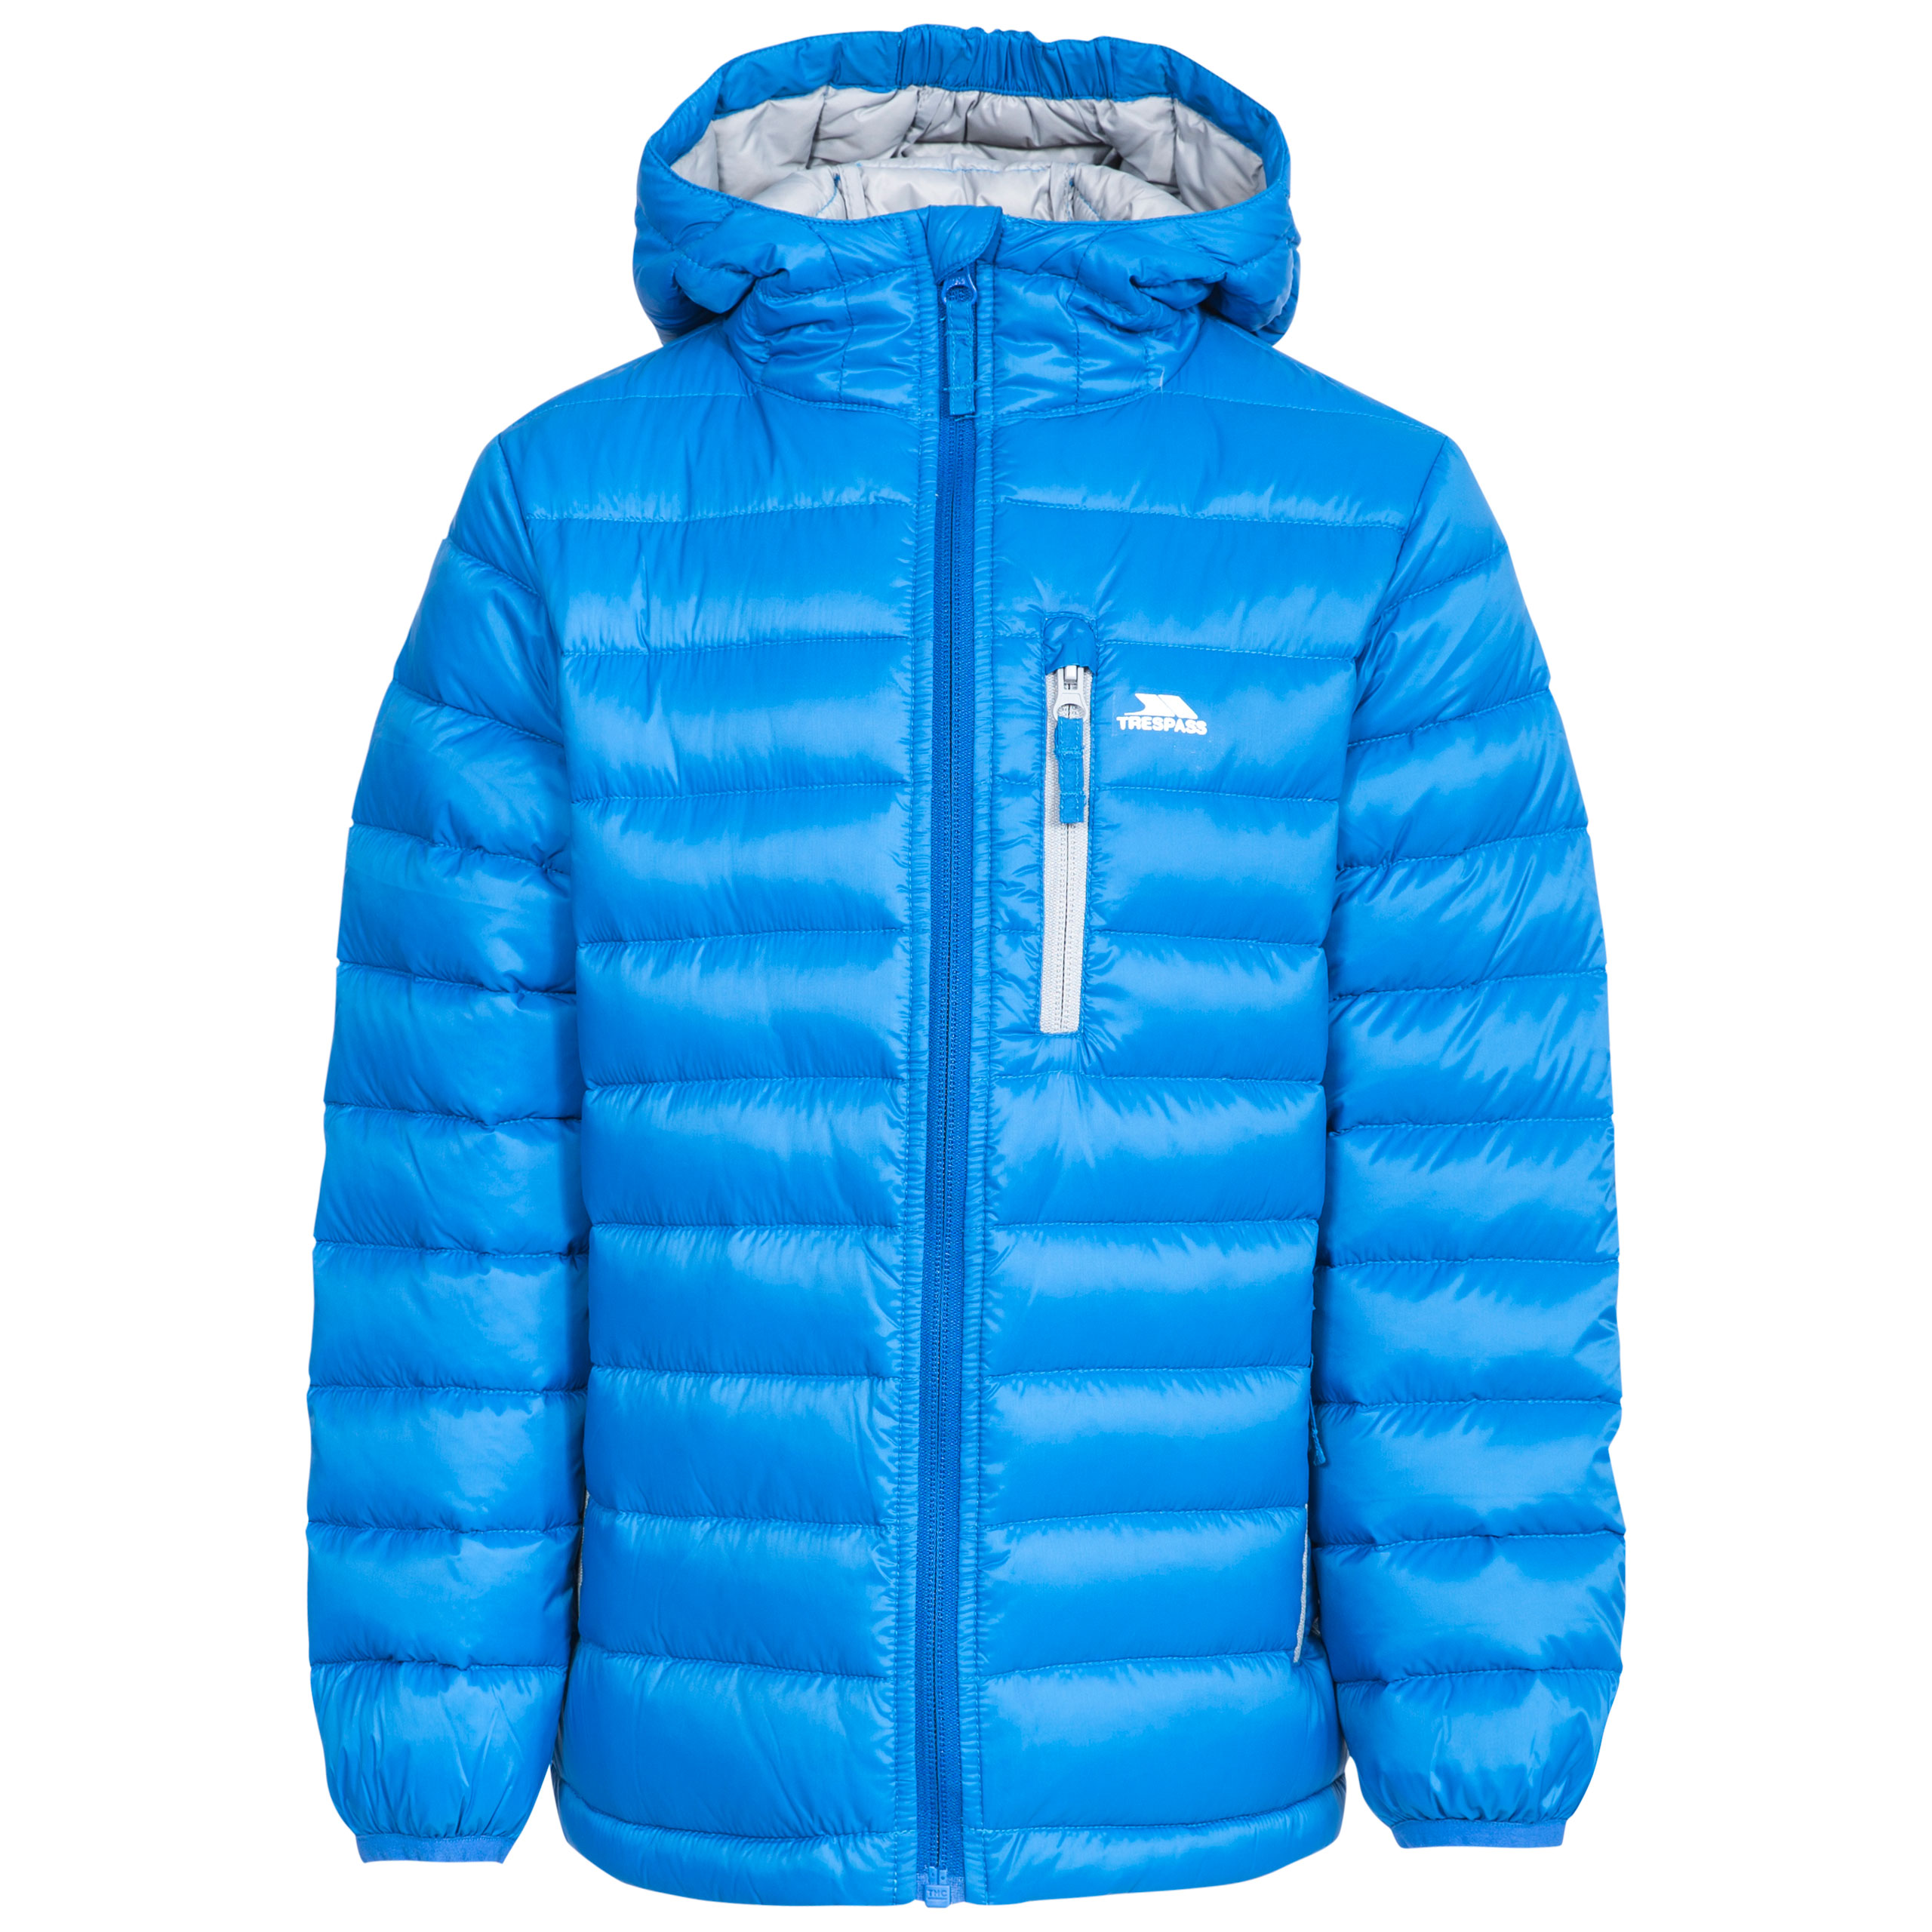 6170e4629800 Trespass Morley Kids Down Jacket with Hood Warm Packaway For Winter ...